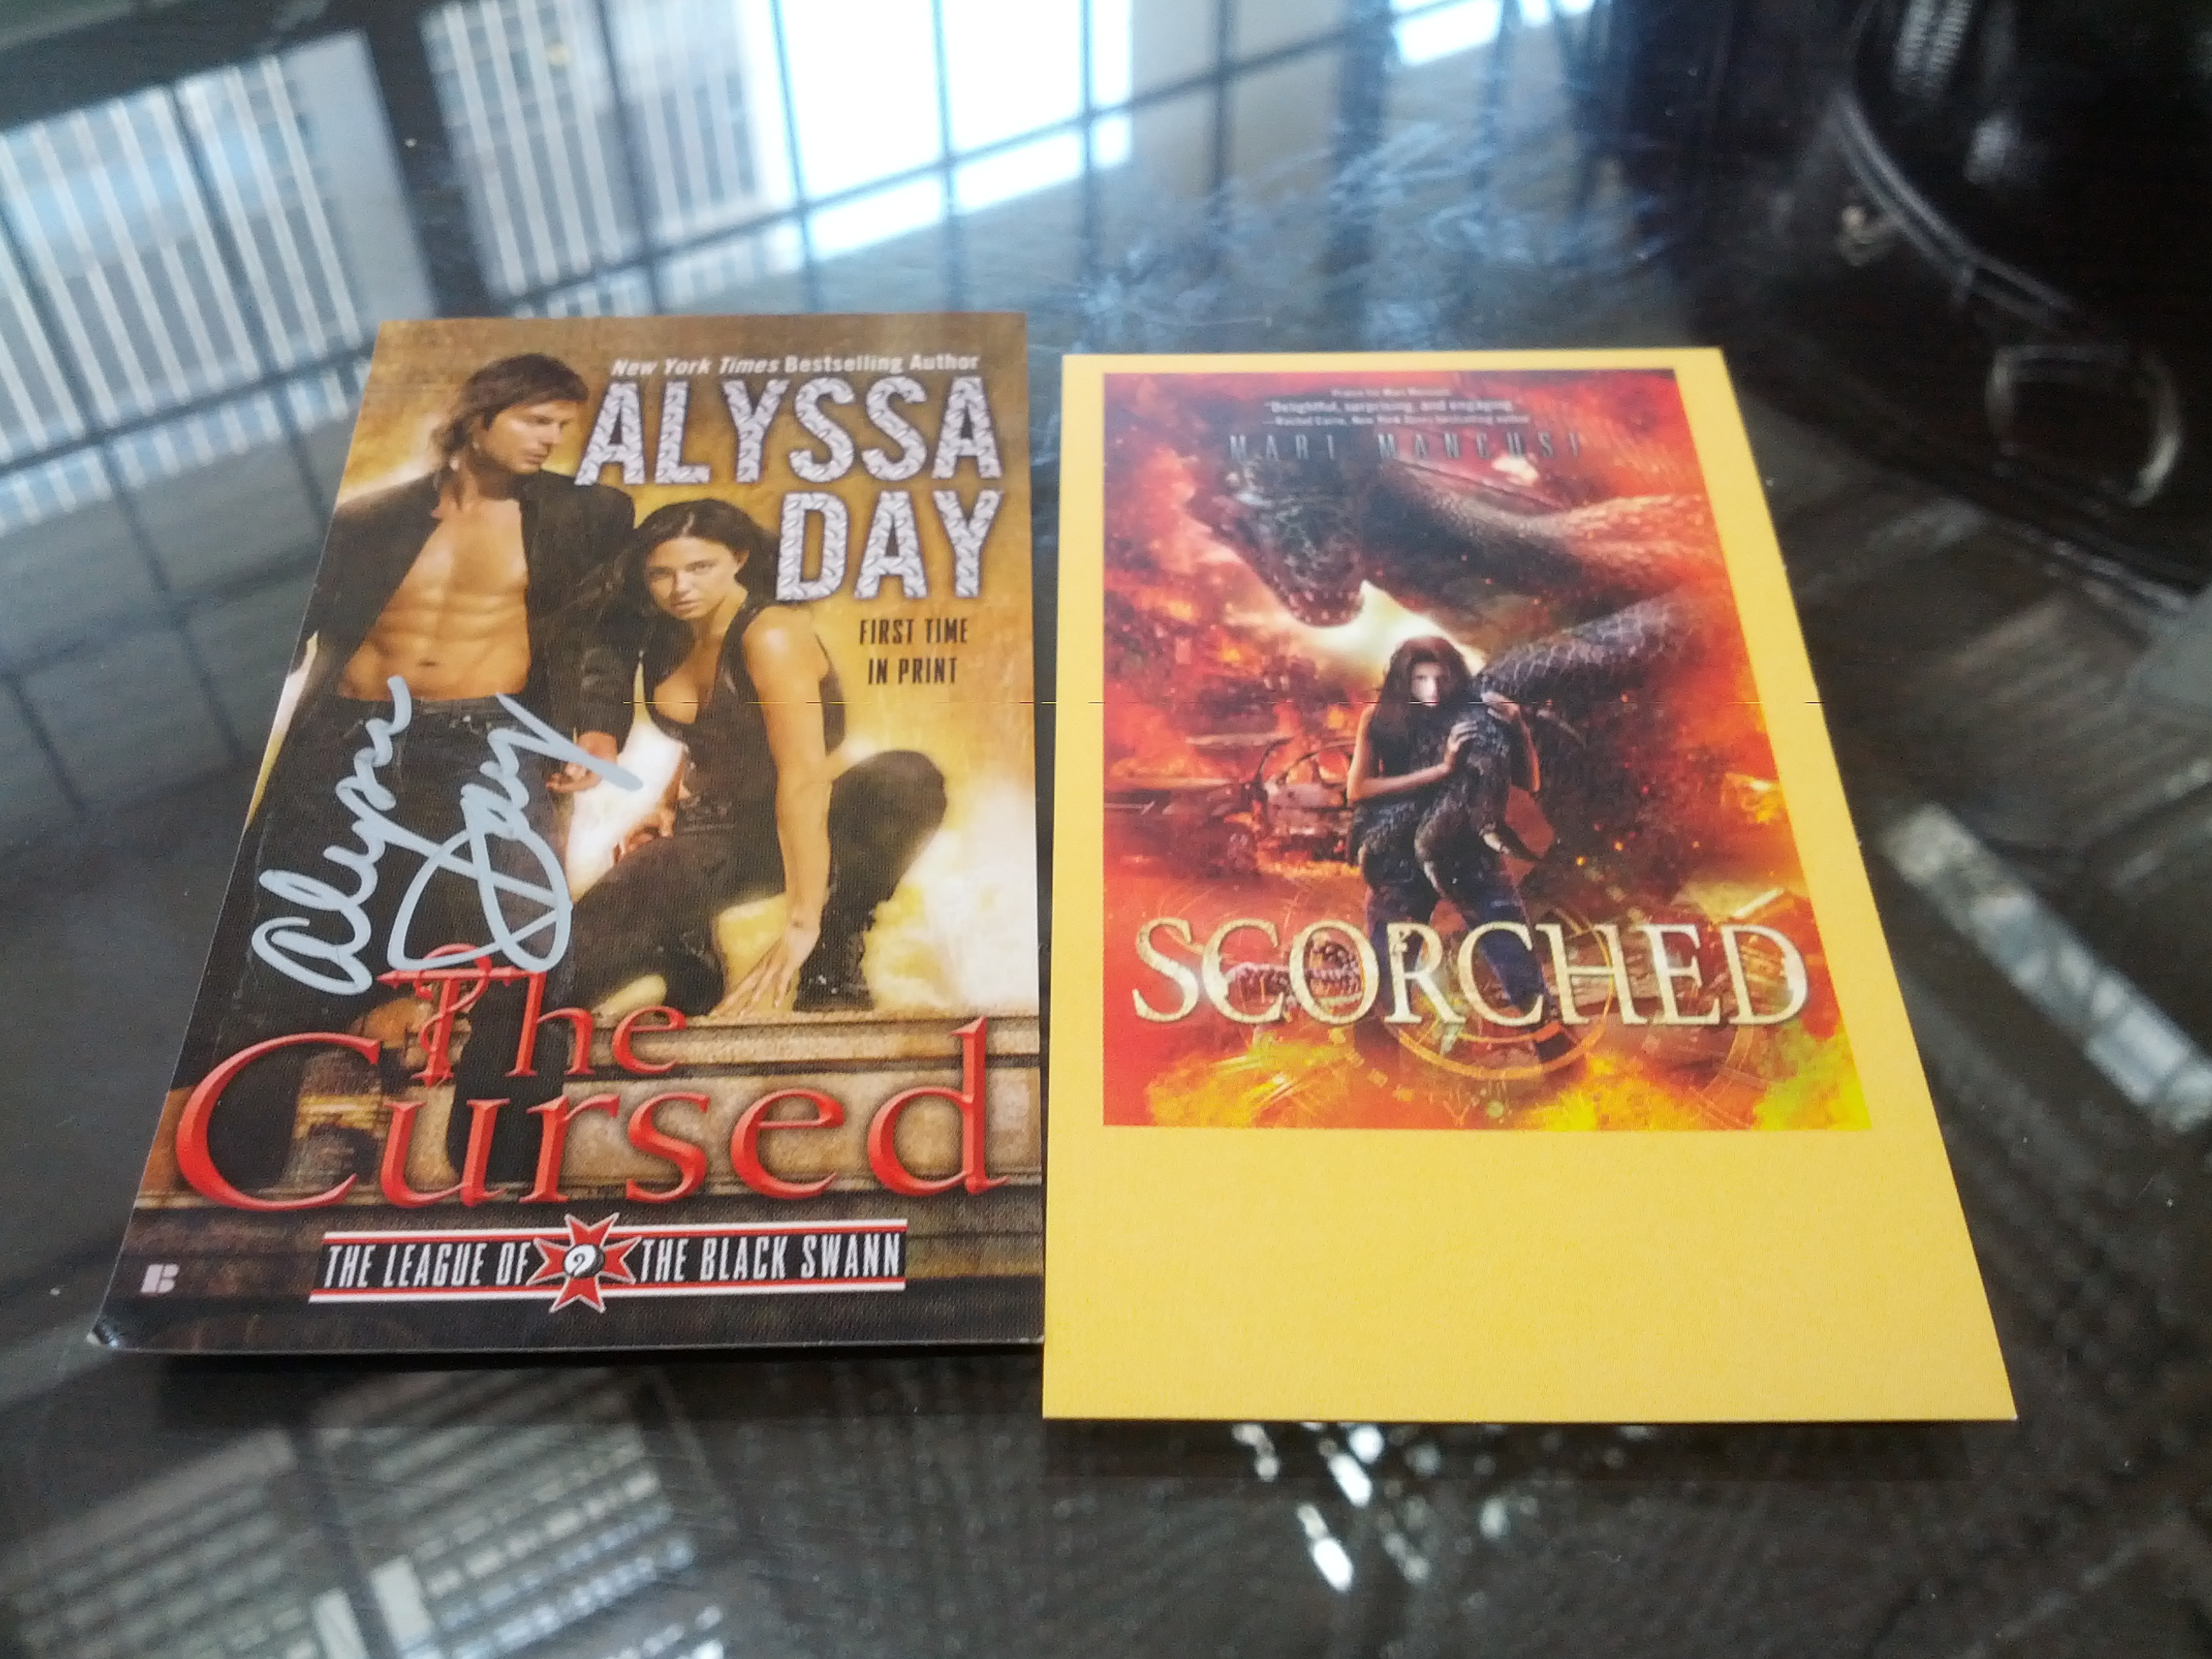 Stickers for ereaders showing Mari Mancusi and Alyssa Day's book covers